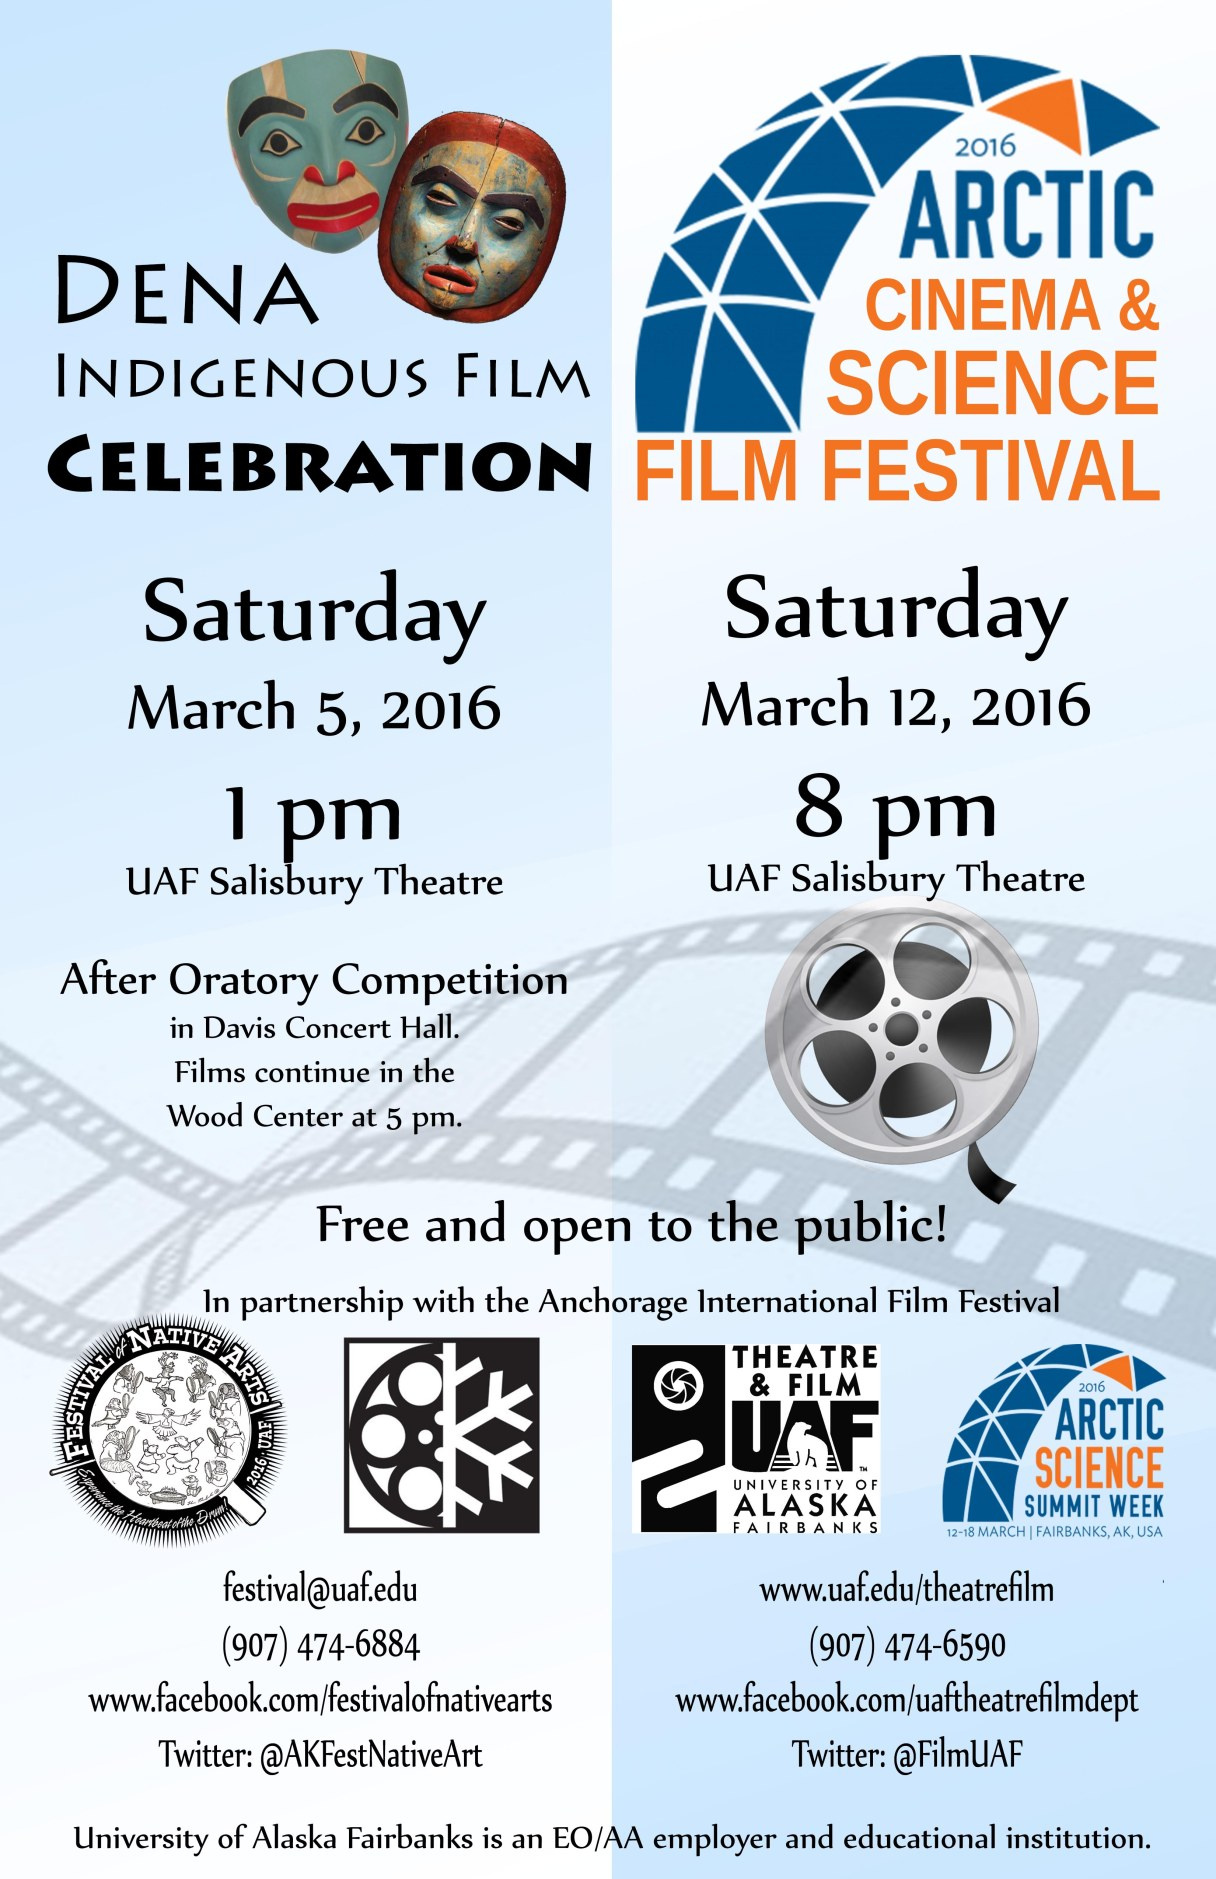 Dena Indigenous Film Celebration and Arctic Cinema and Science Film Festival